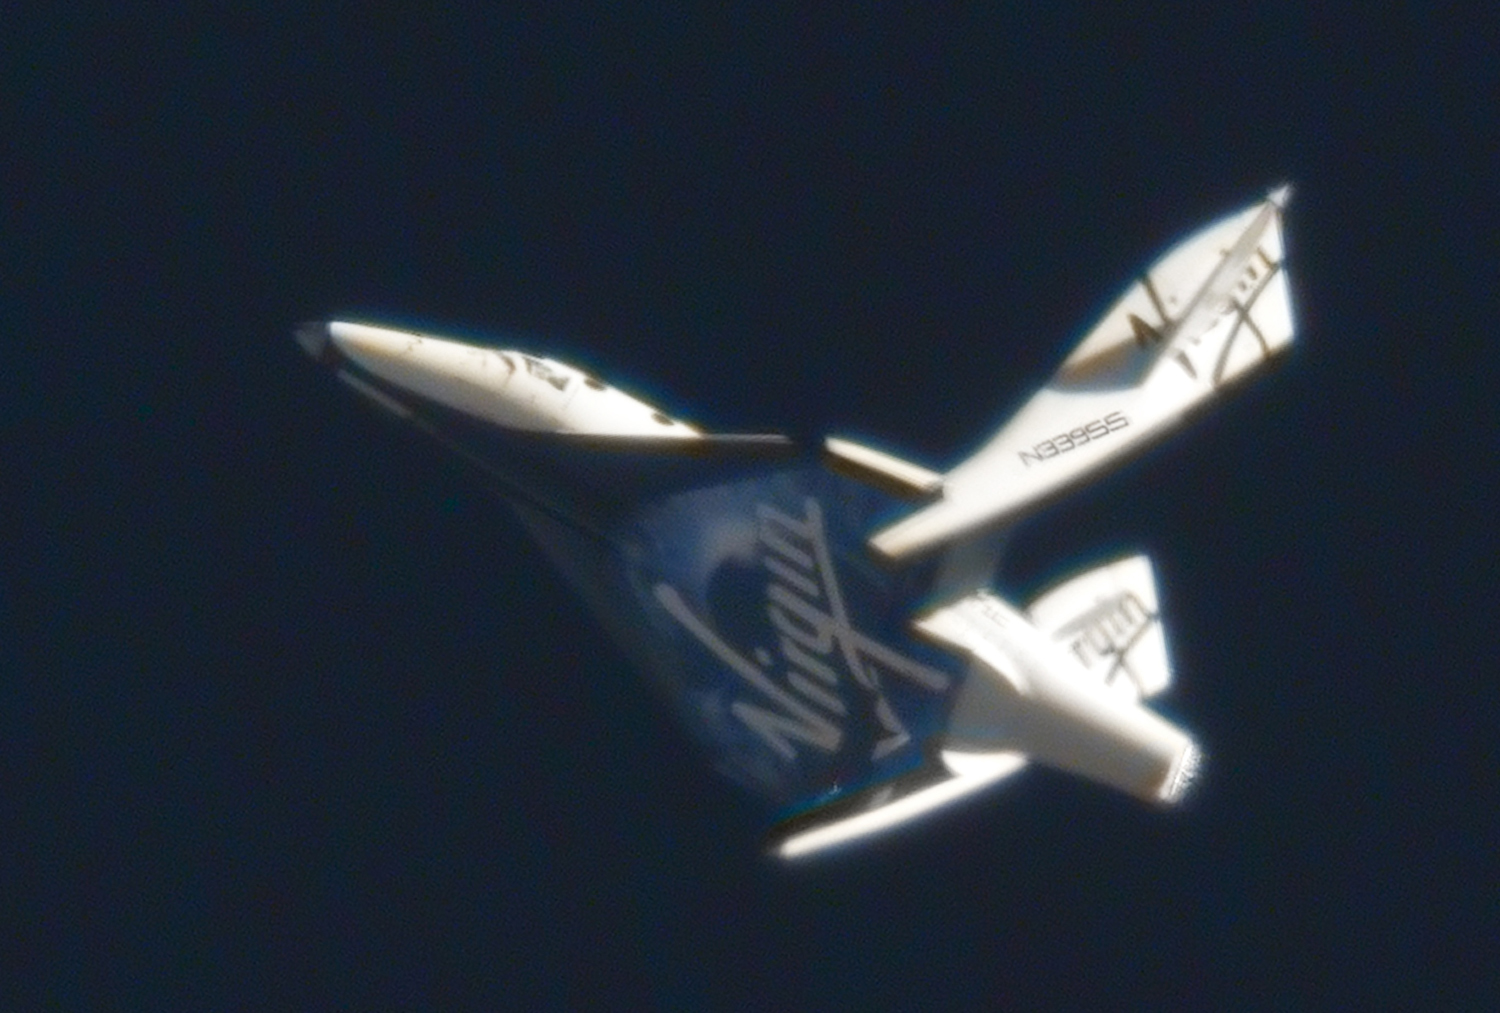 Virgin Galactic's Private Spaceship Makes Safe Landing After Tense Test Flight